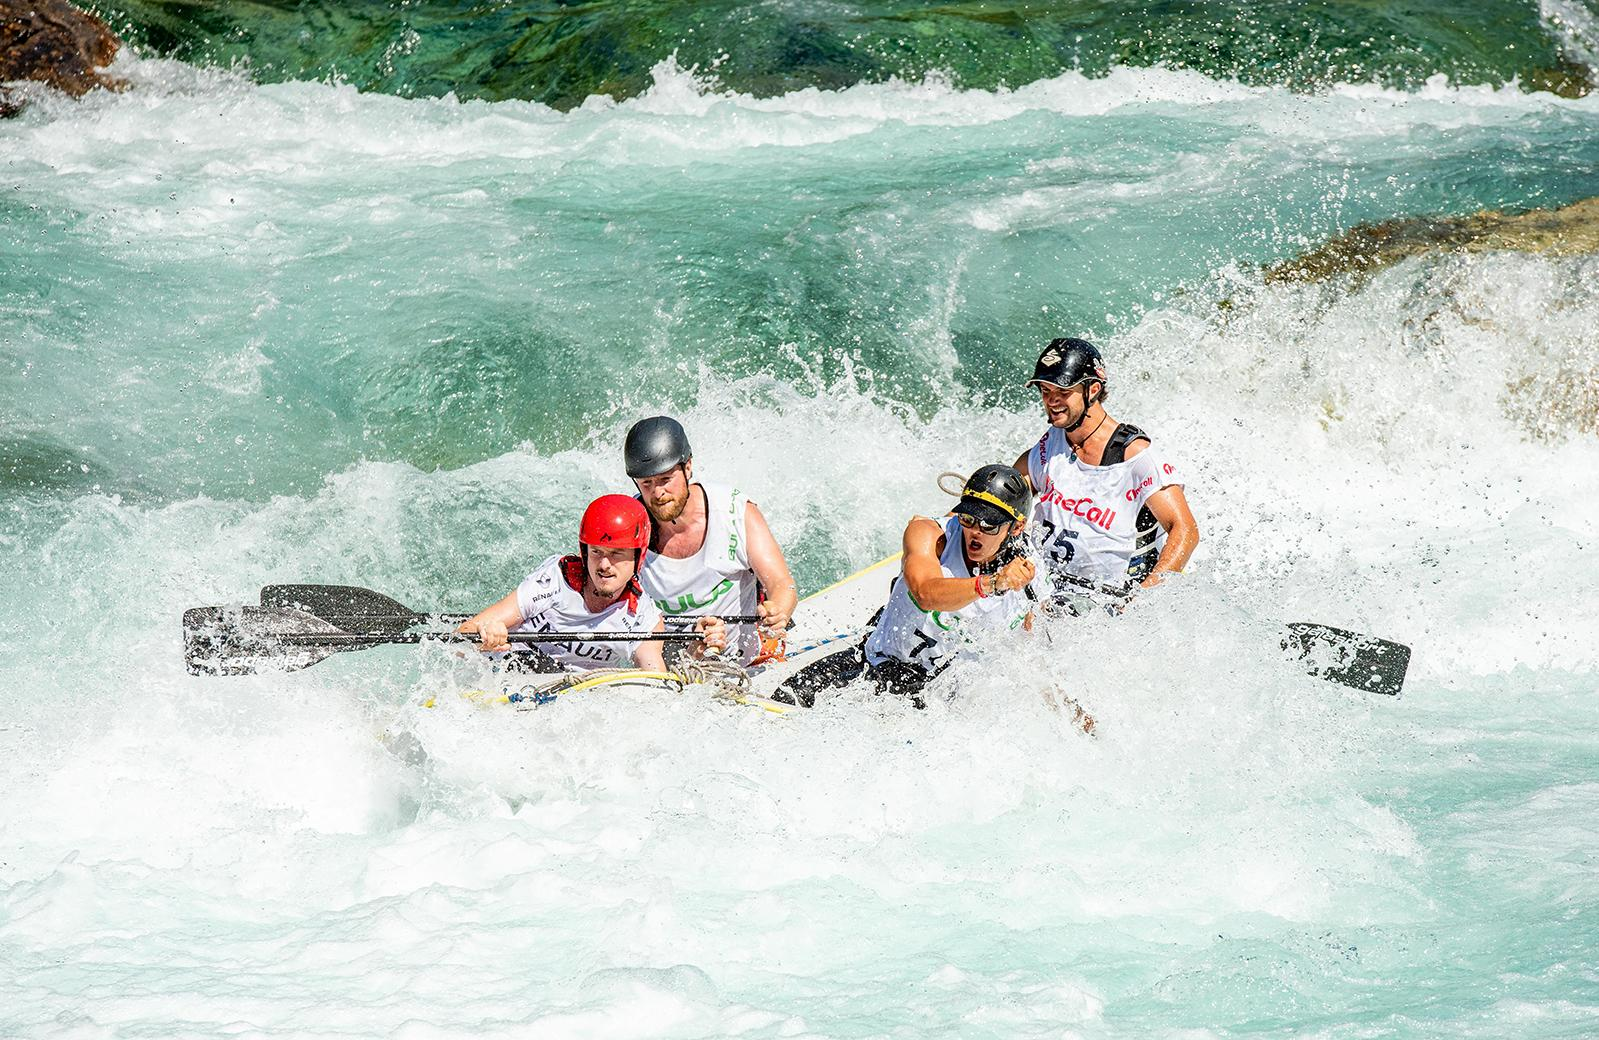 Fun ride to remember: Rafting on Zrmanja river Croatia